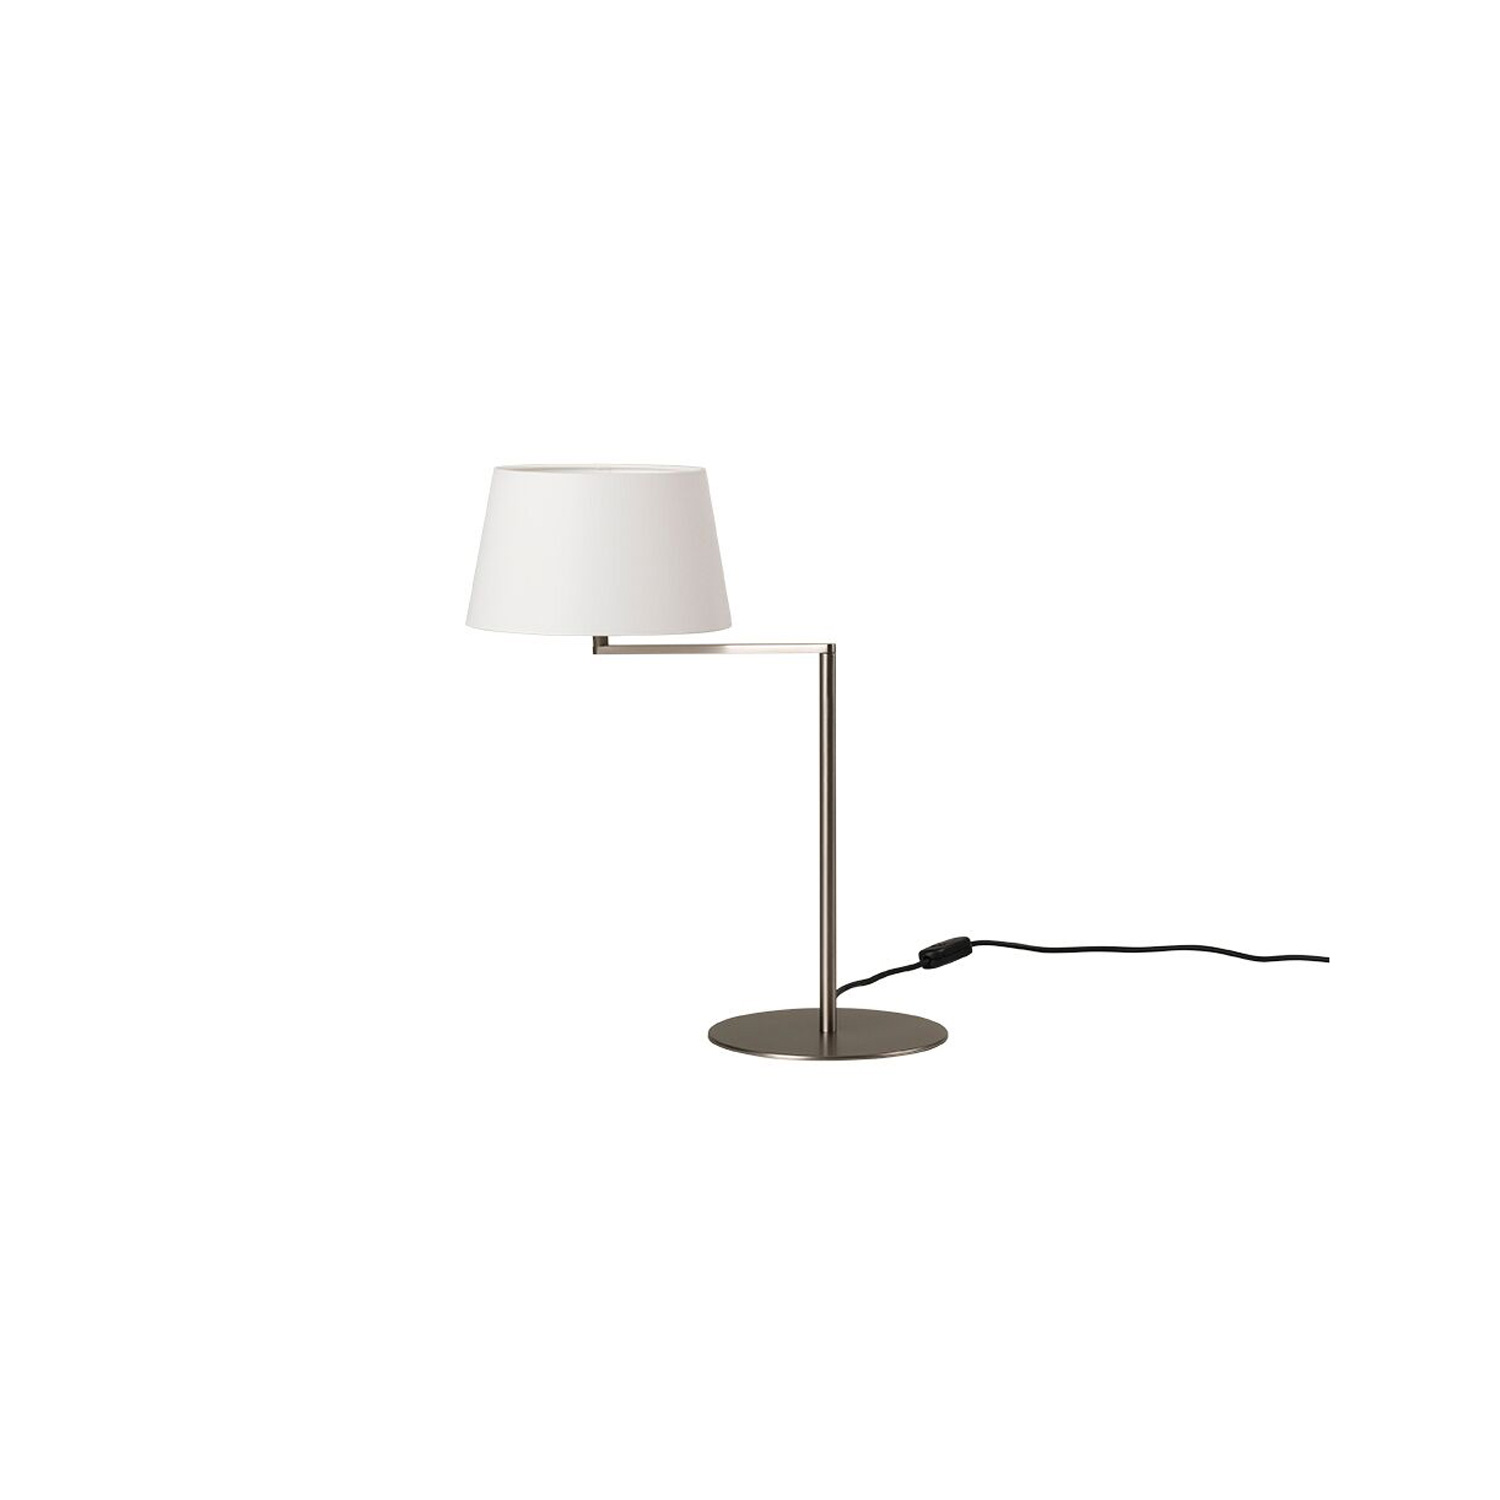 Americana Table Lamp - Enthralled by the idea of enhancing Hansen's remarkable geometry, Milá's Americana series is also based on a swing arm, although here the arm is a single section with a right-angled bend. Accordingly, the head of the shaft becomes the swivel that enables the shades horizontal rotation, reducing the lever effect. The arm can be moved towards you or away from you without shifting the large metal base, evoking the swing motion.  | Matter of Stuff